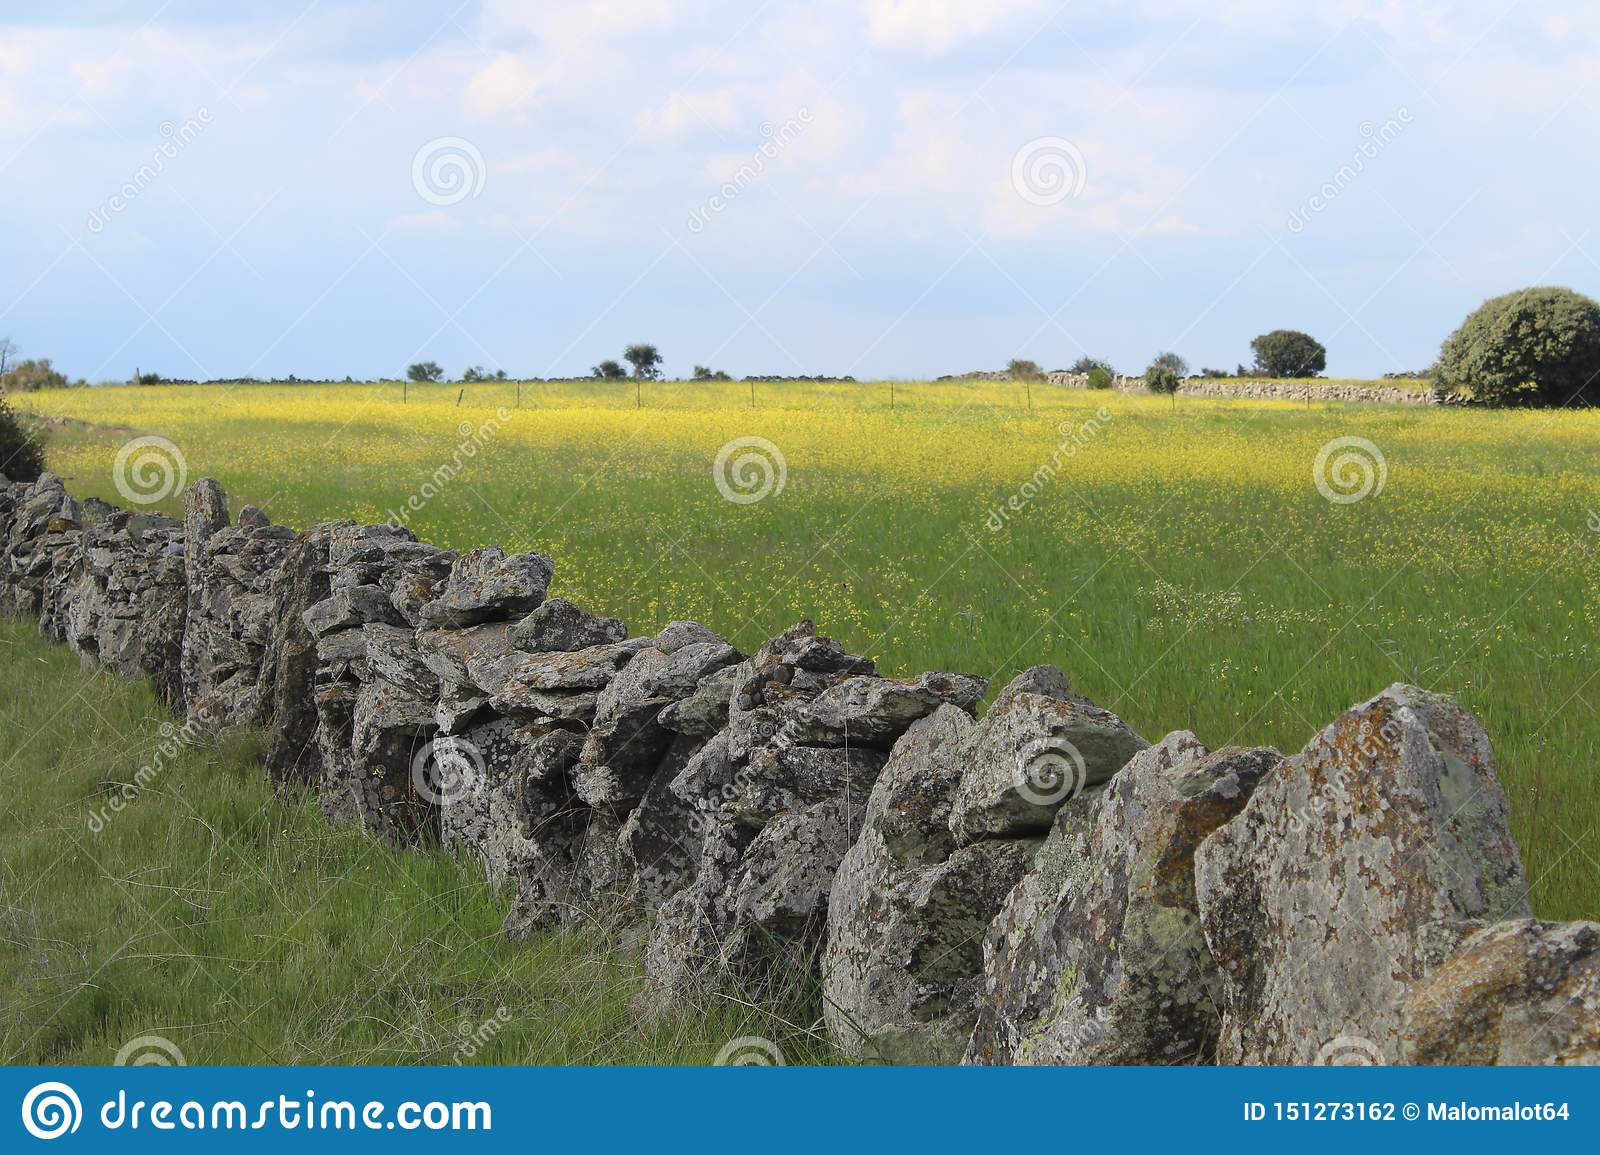 Beautiful stone wall that separates the fields and animals